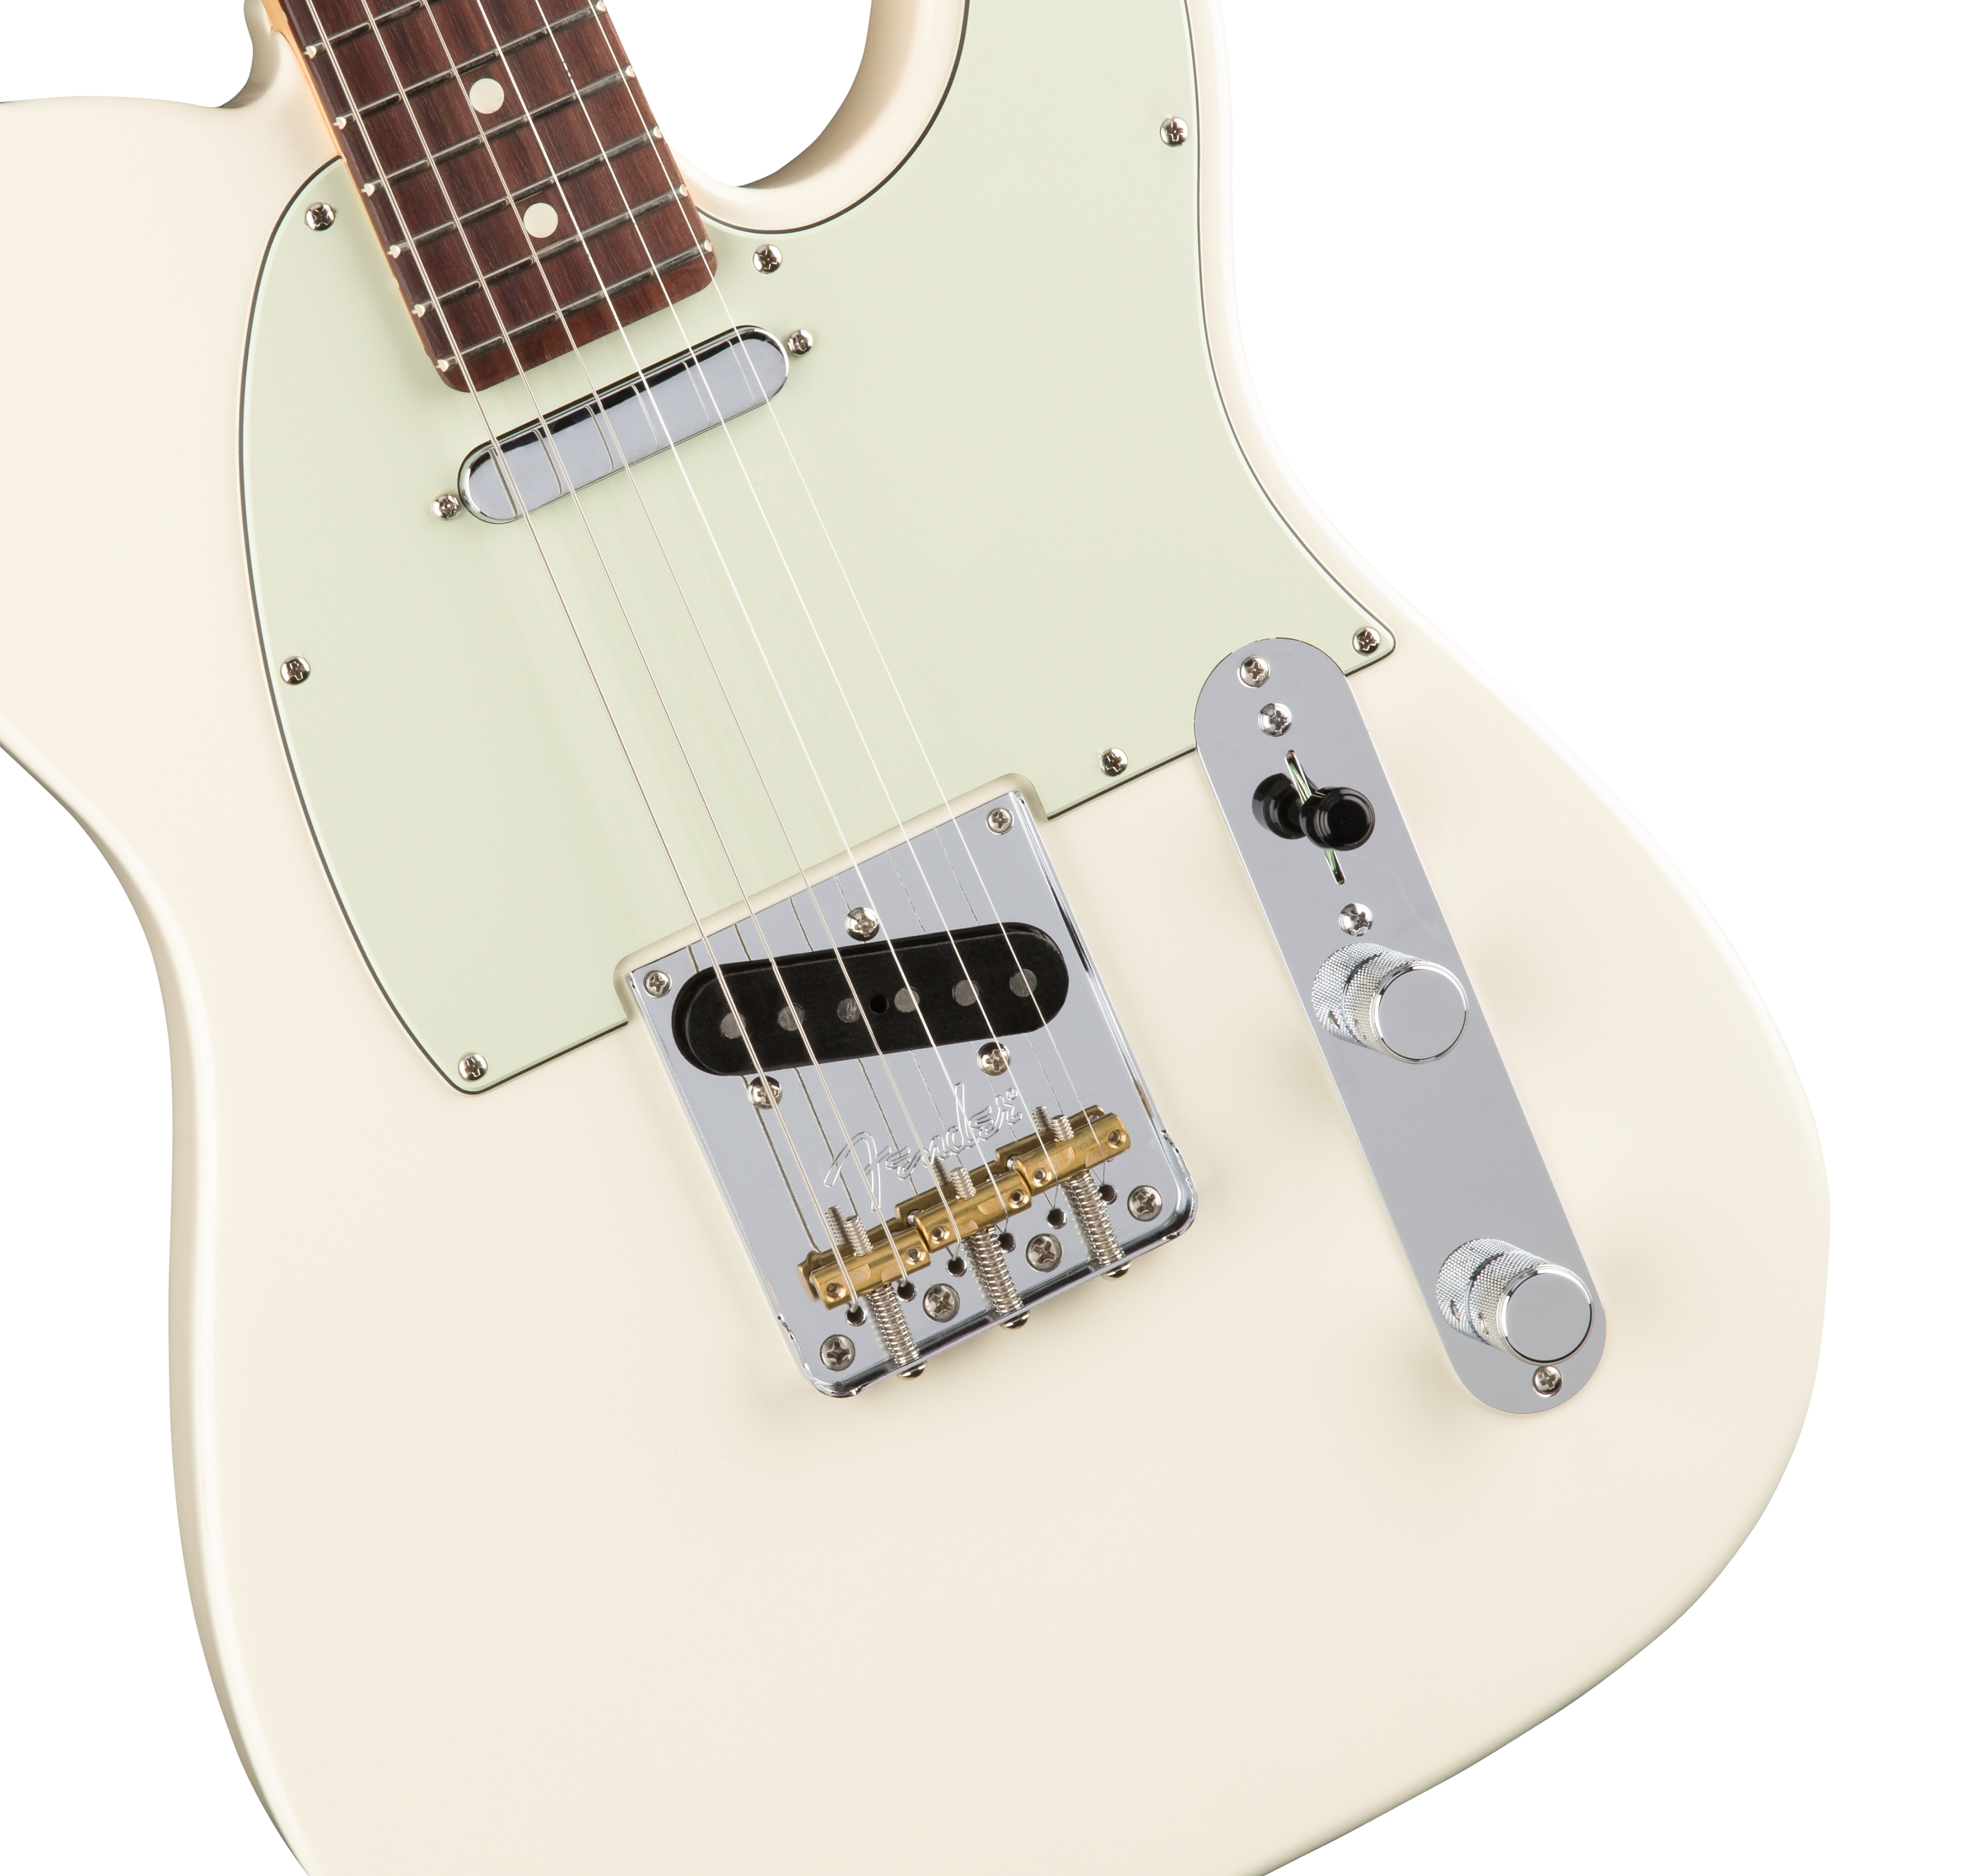 American Professional Telecaster Electric Guitars Series Wiring